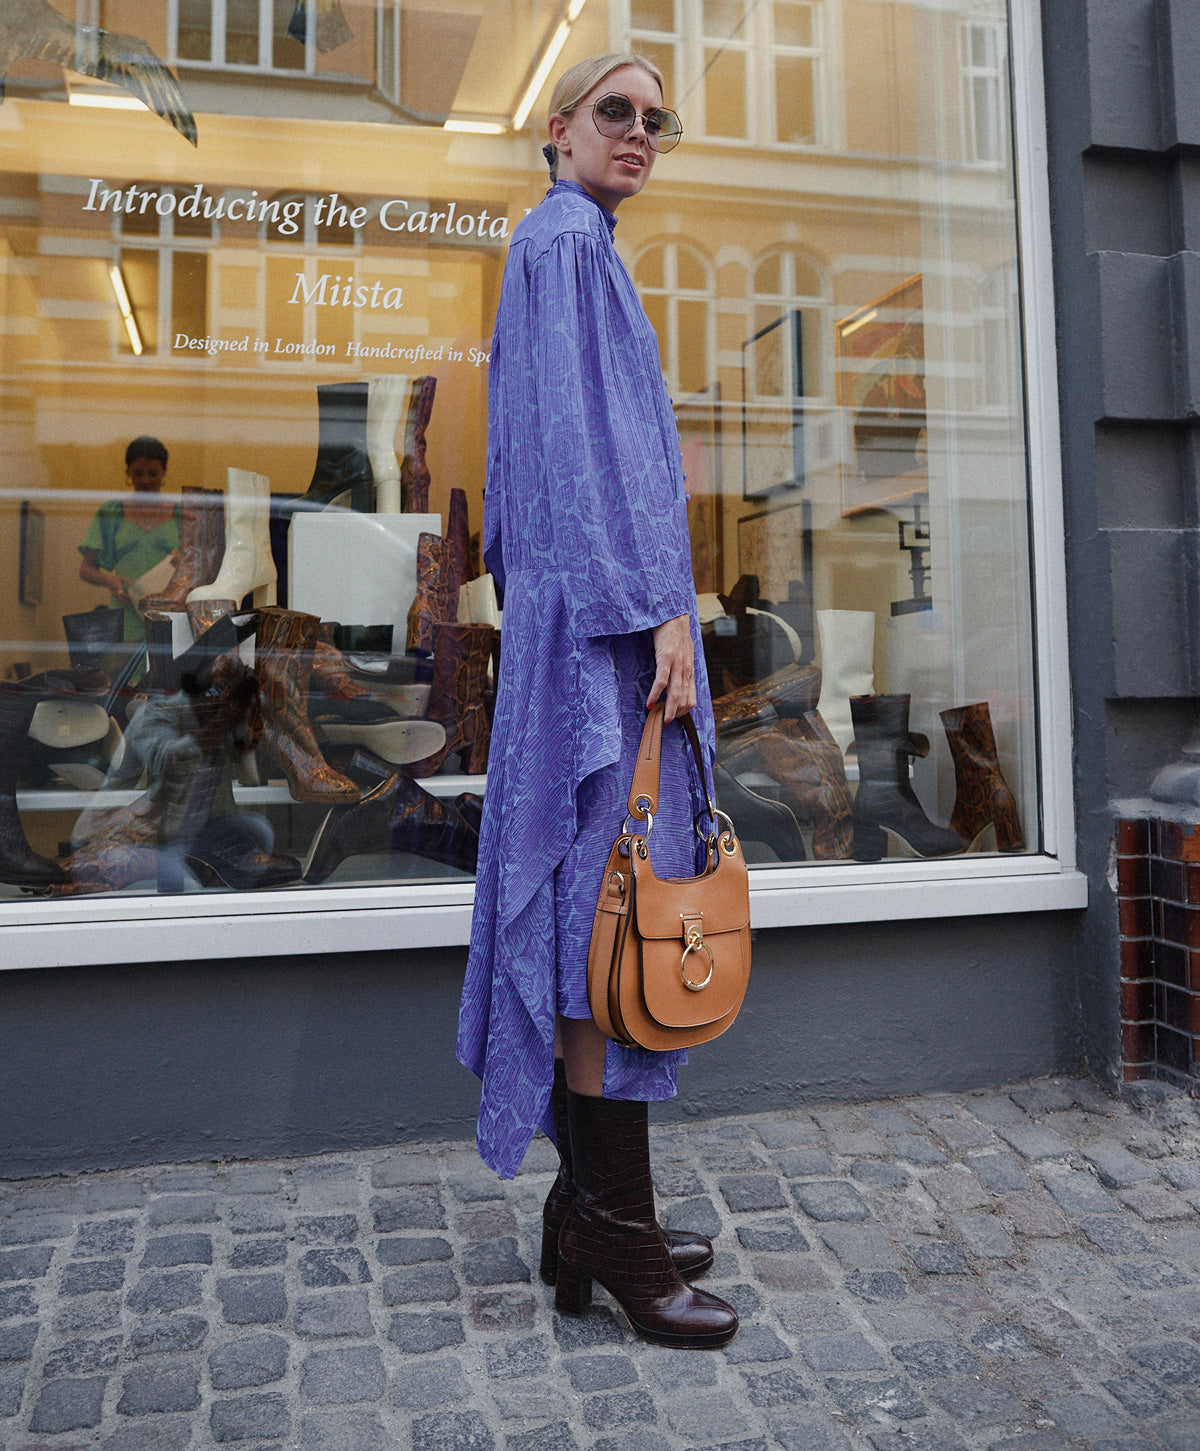 Hanna Stefansson at Miista Event during Copenhagen Fashion Week